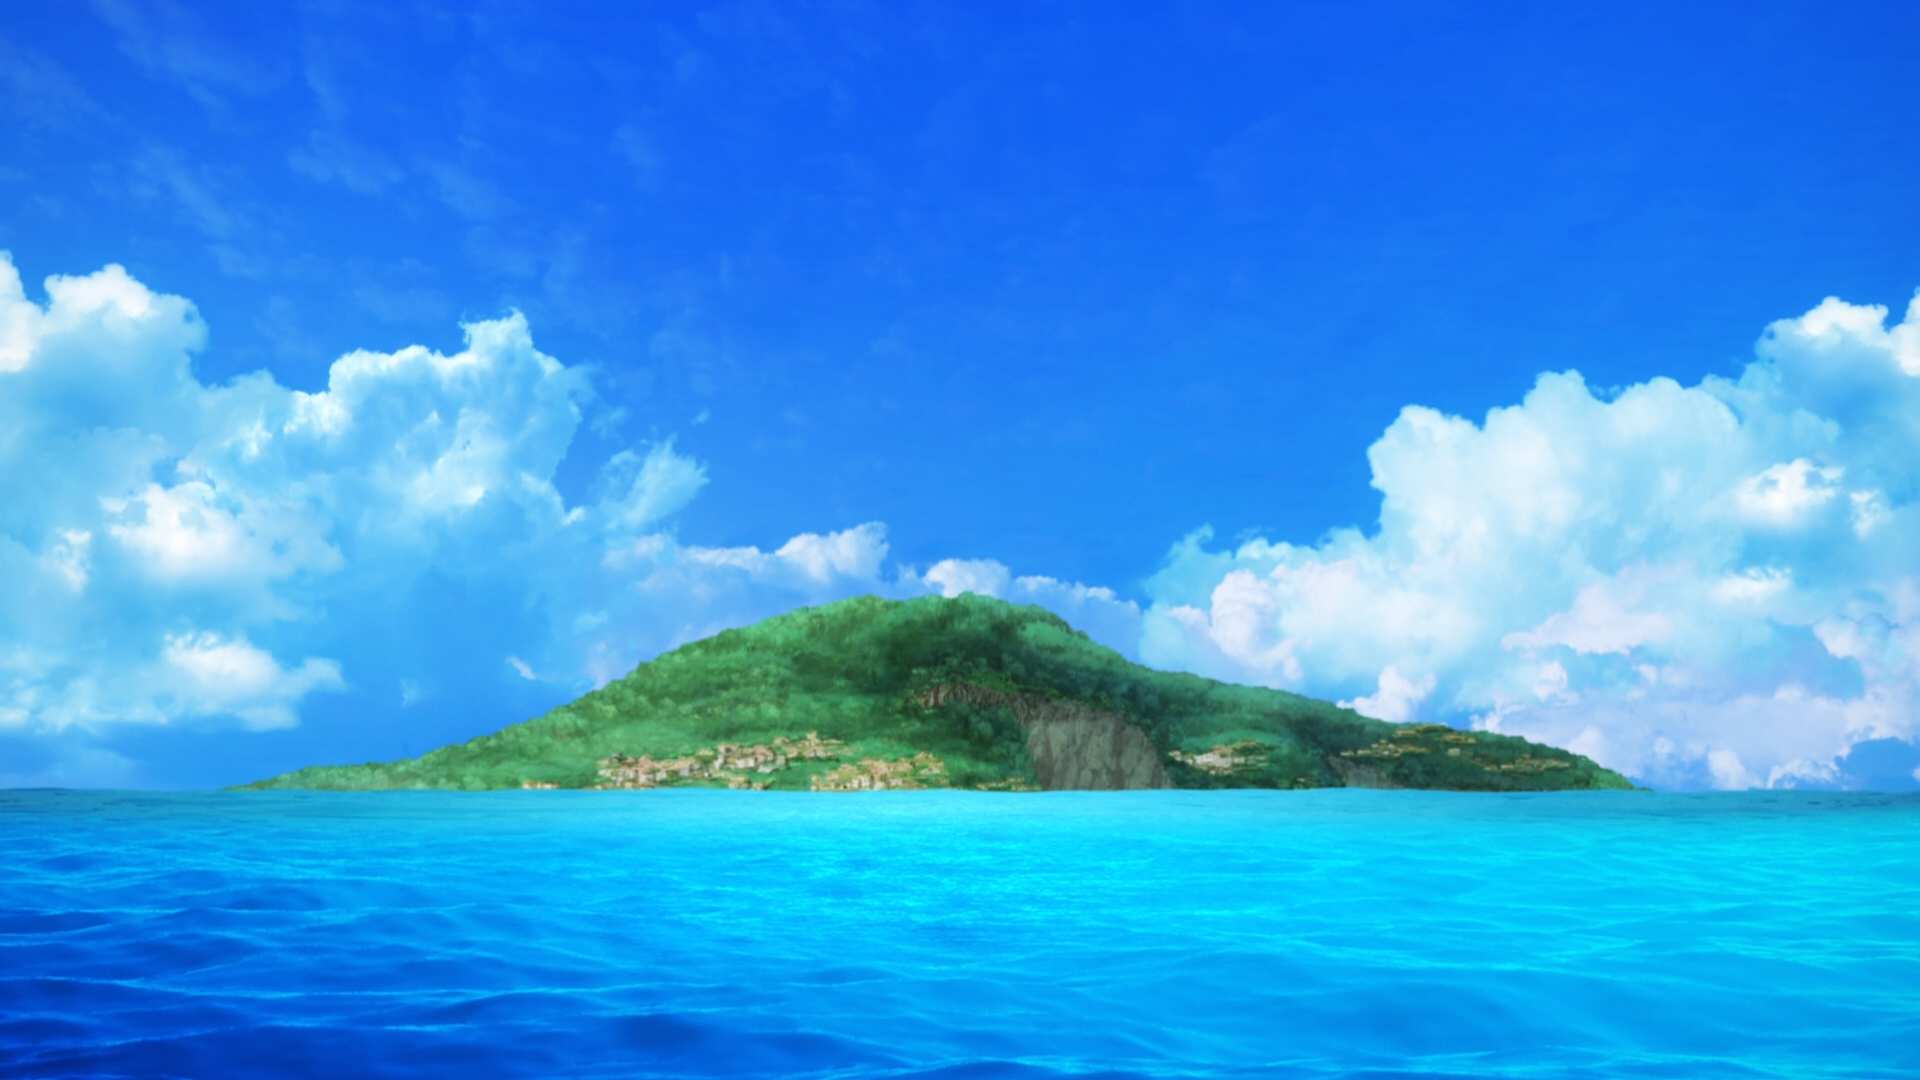 Http Typemoon Wikia Com Wiki File Arimago Island Png